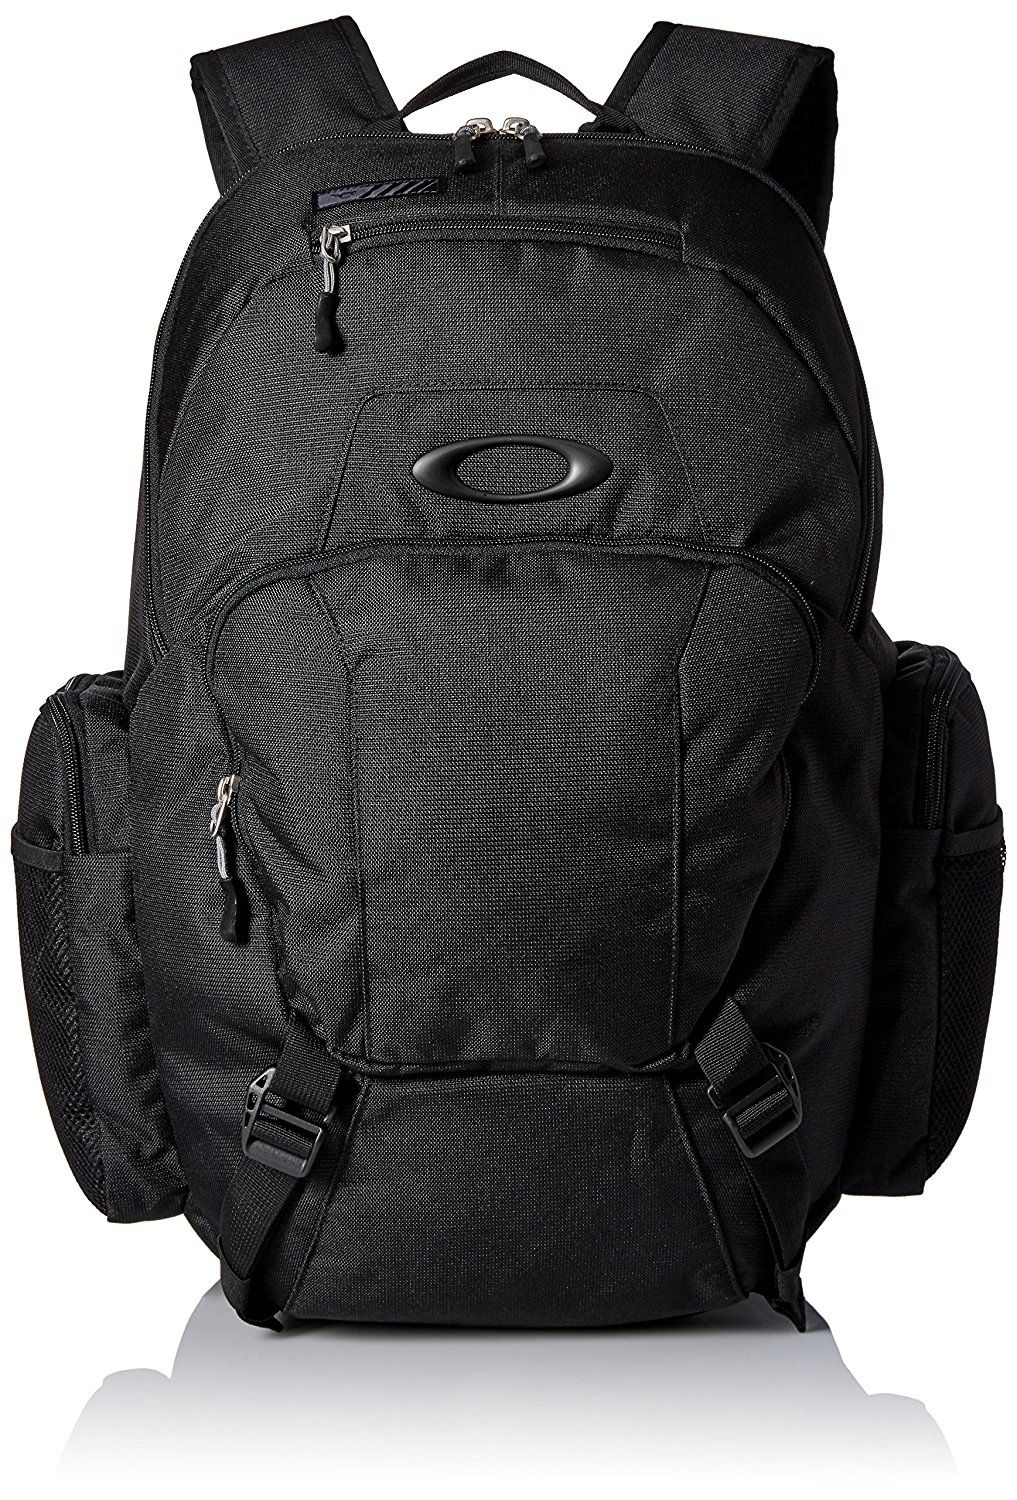 521e41c7eb7 Oakley Men s Blade Wet Dry 30     Startling review available here    Backpacking bags